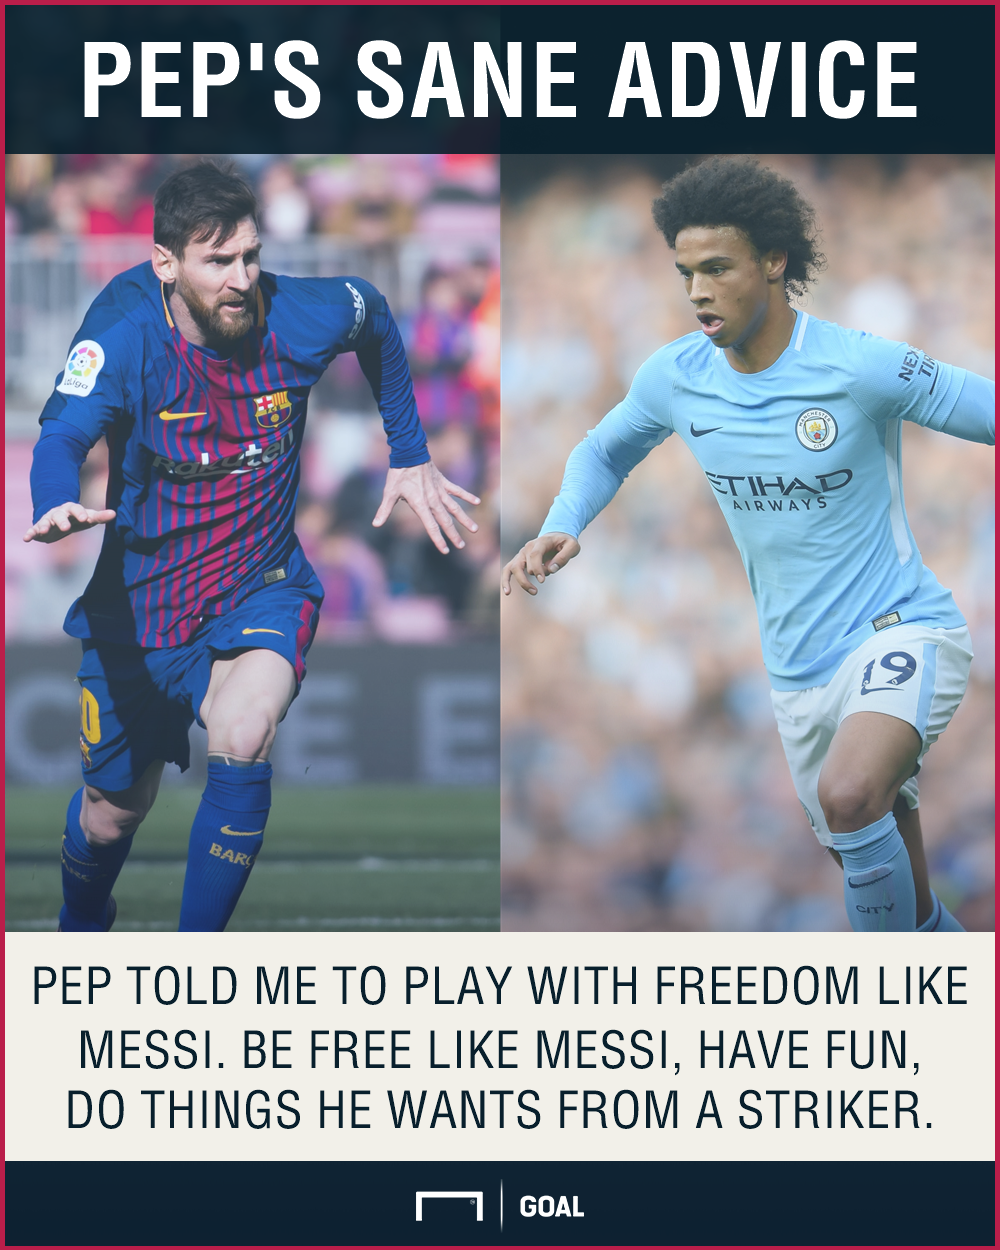 Leroy Sane play like Lionel Messi